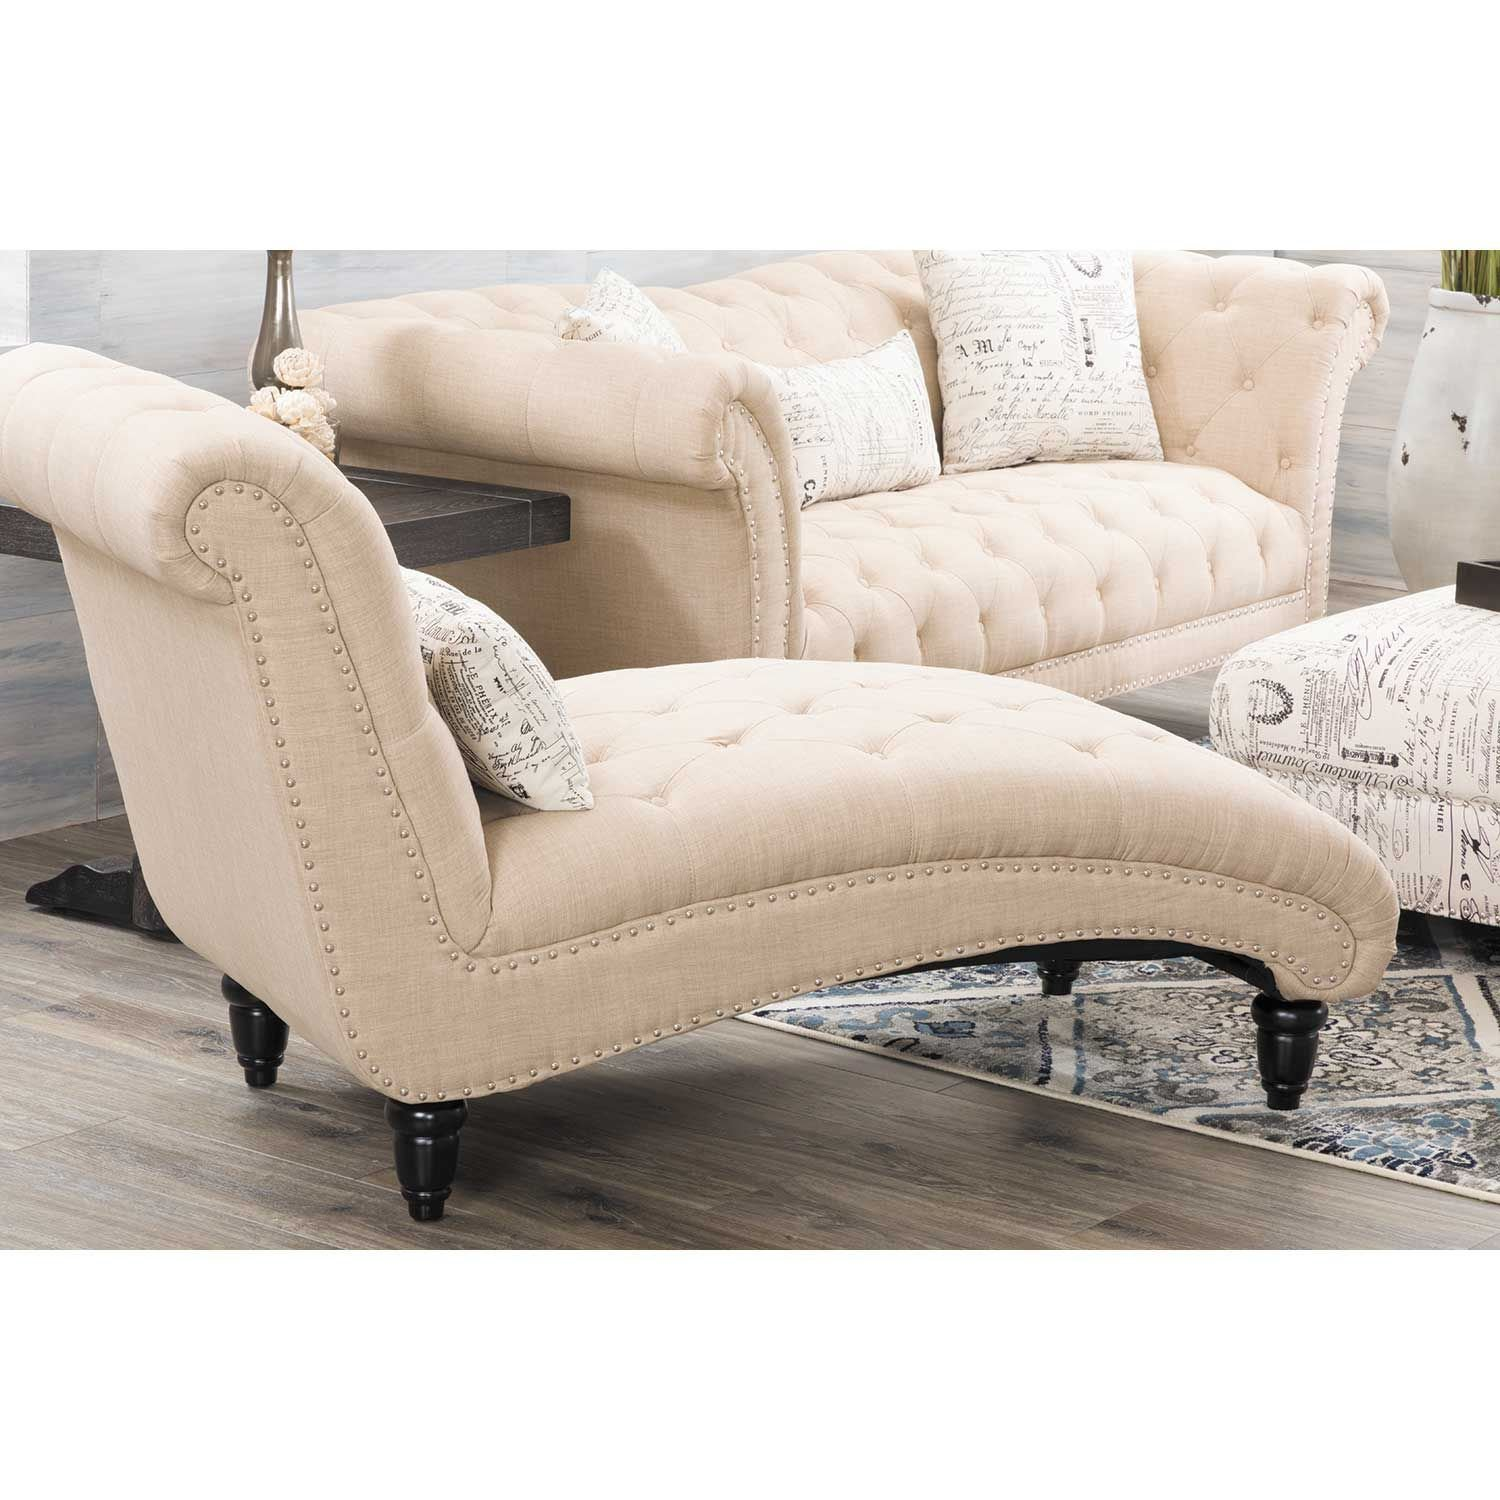 Picture of Audrey Tufted Chaise